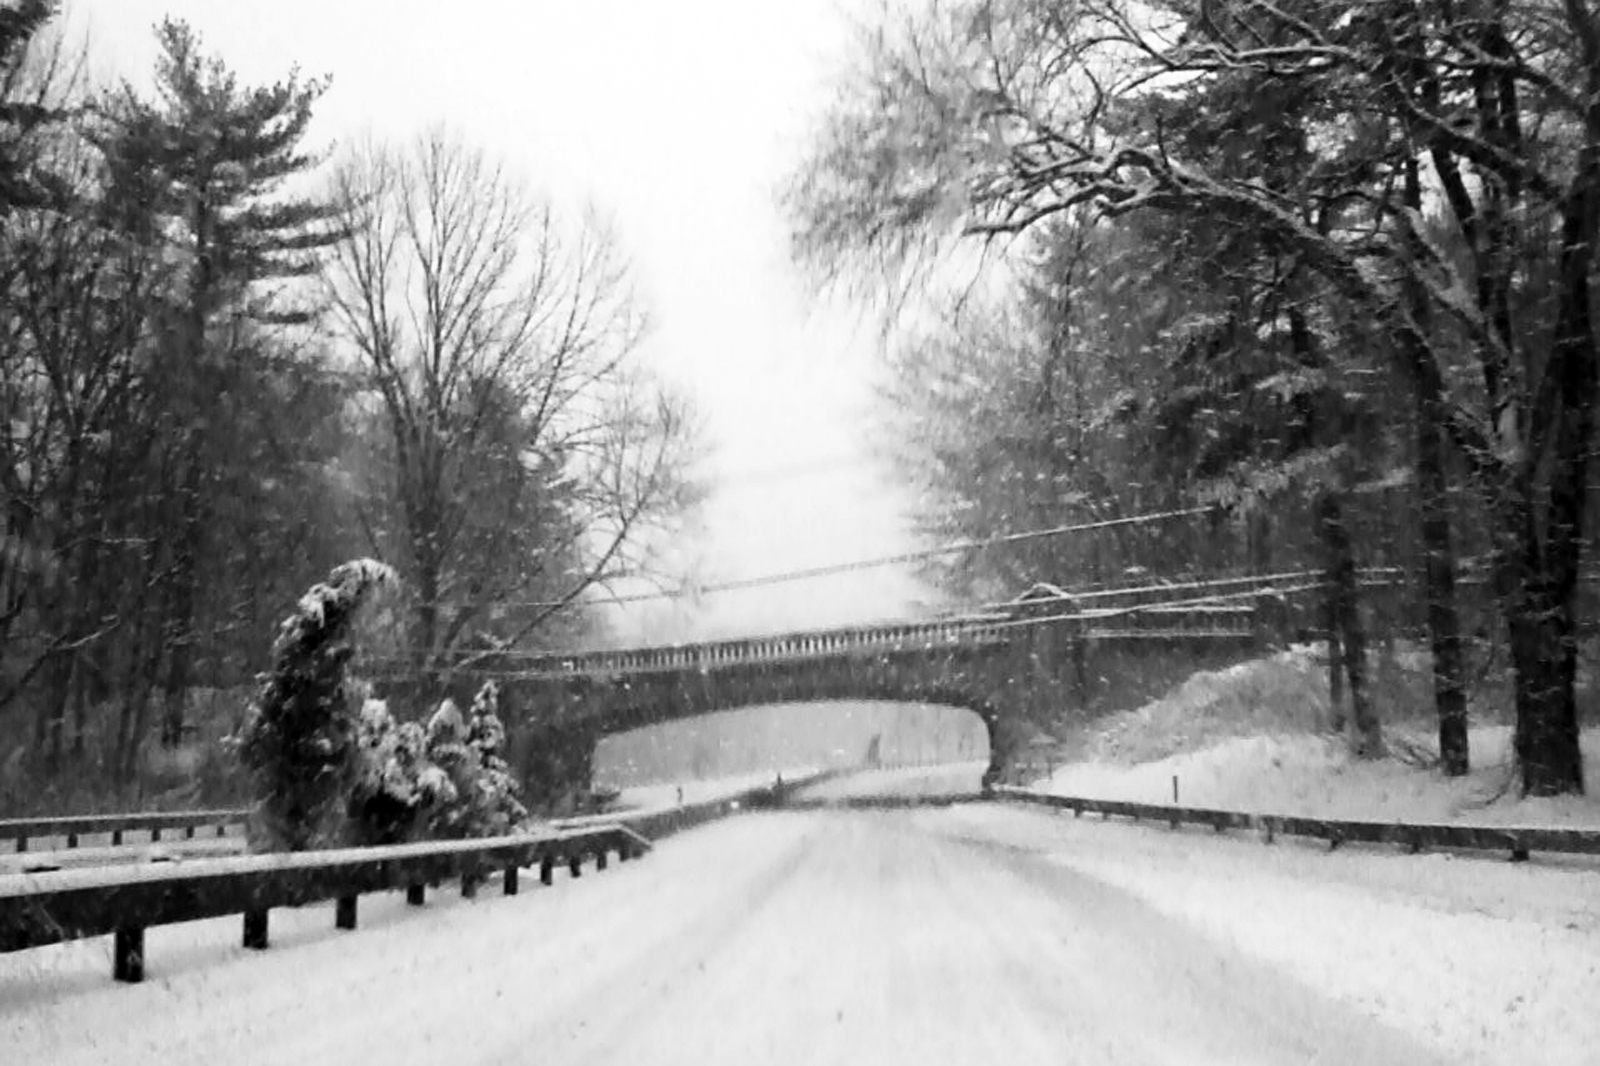 Merritt Parkway on the way to the NYC Flower Market